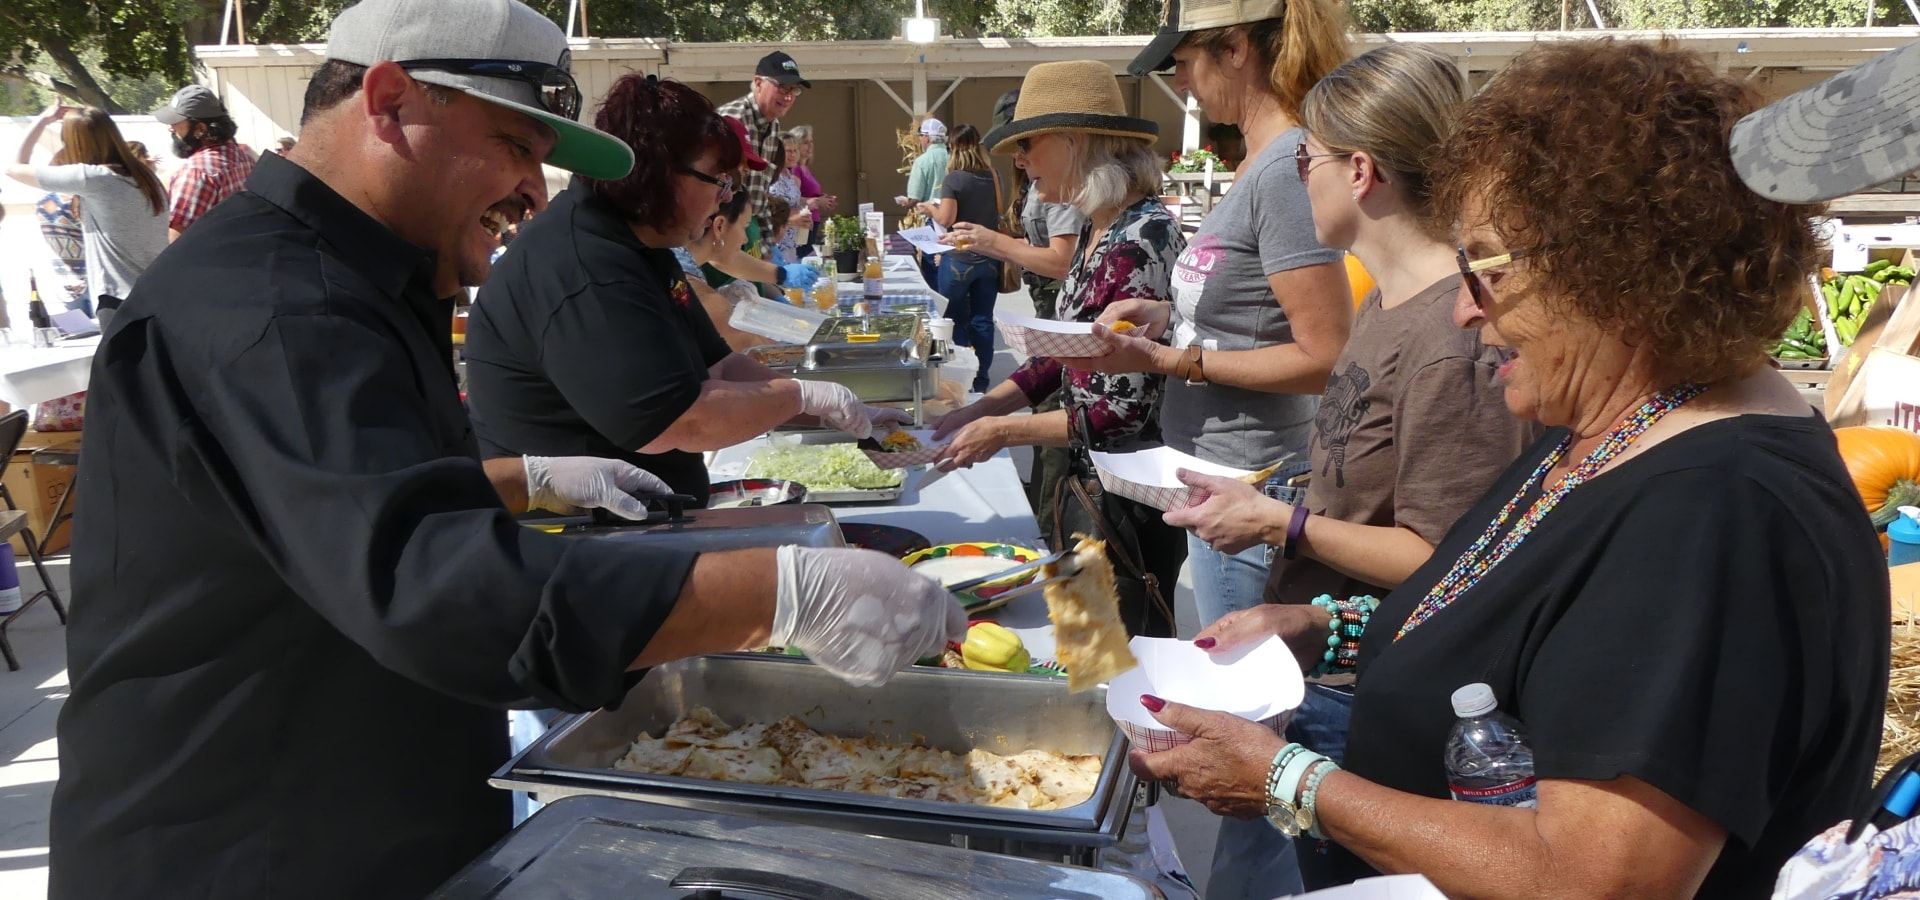 Food being served to people at San Benito County Fair